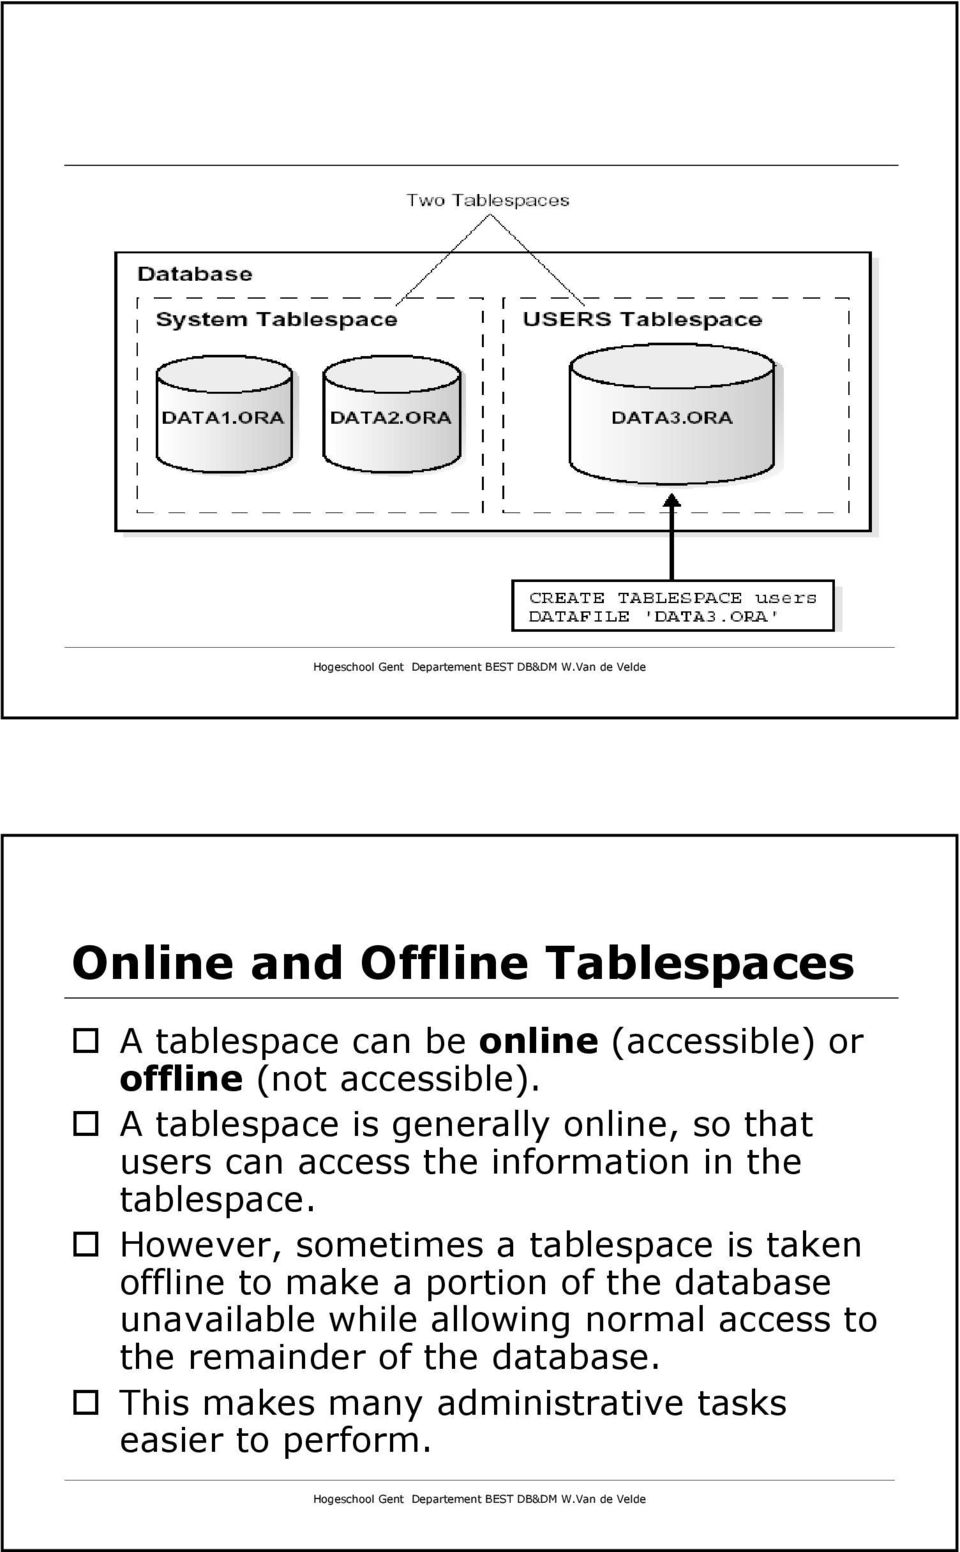 However, sometimes a tablespace is taken offline to make a portion of the database unavailable while